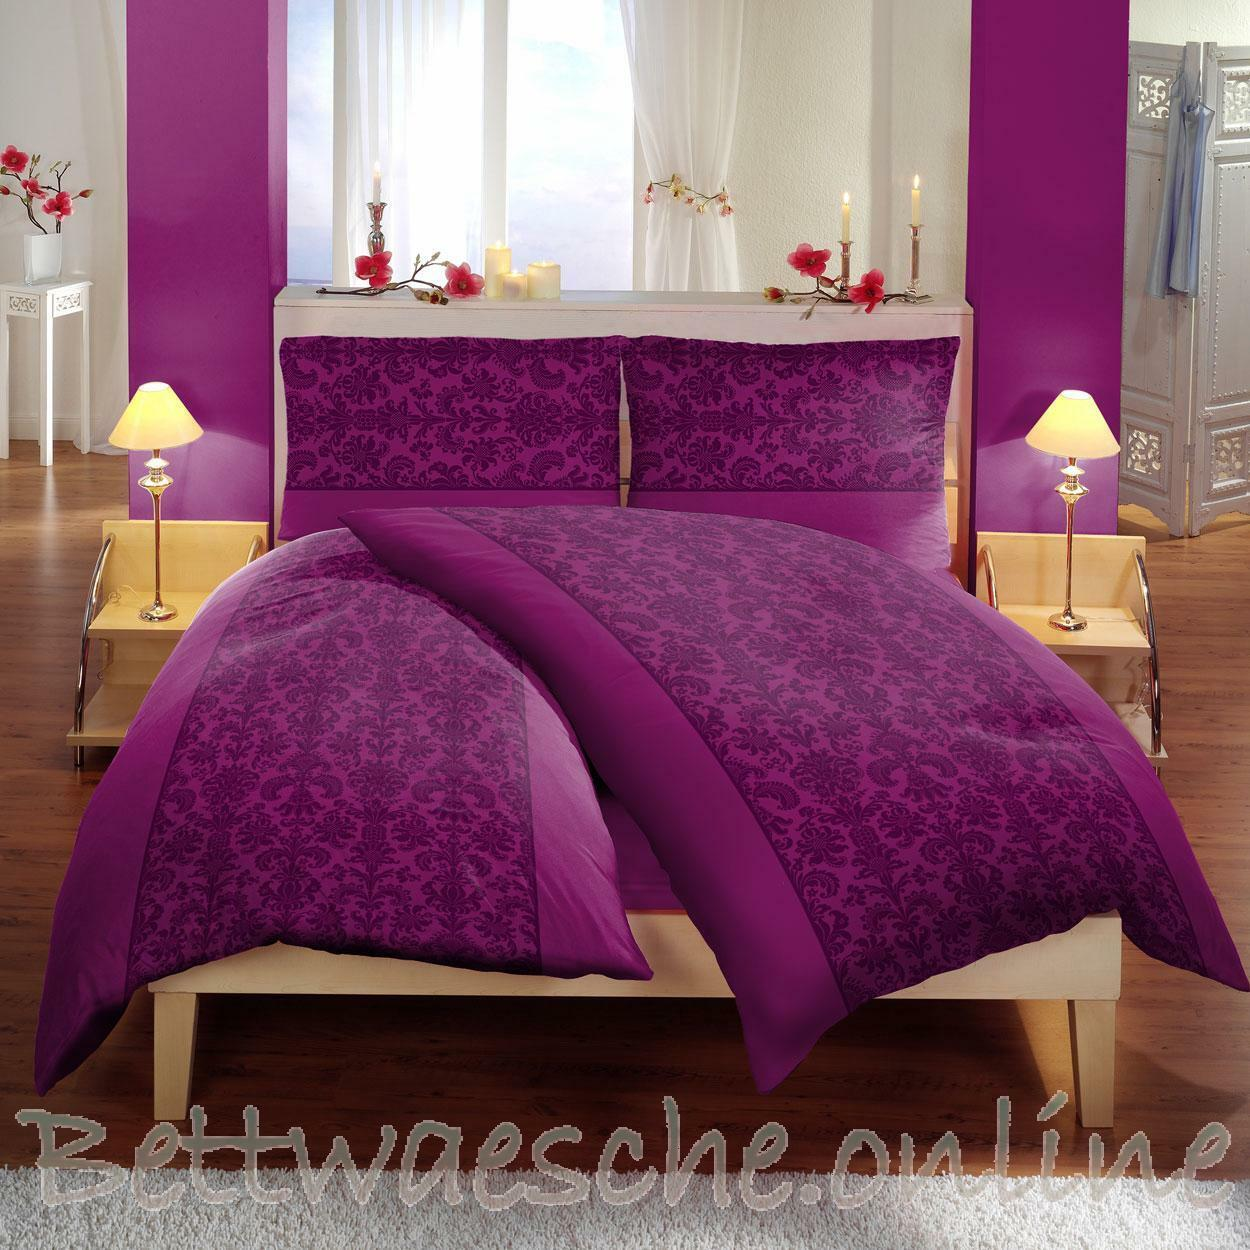 mikrofaser bettw sche 140x200cm 6 teilig ornamente rot 1b ware eur 9 95 picclick de. Black Bedroom Furniture Sets. Home Design Ideas